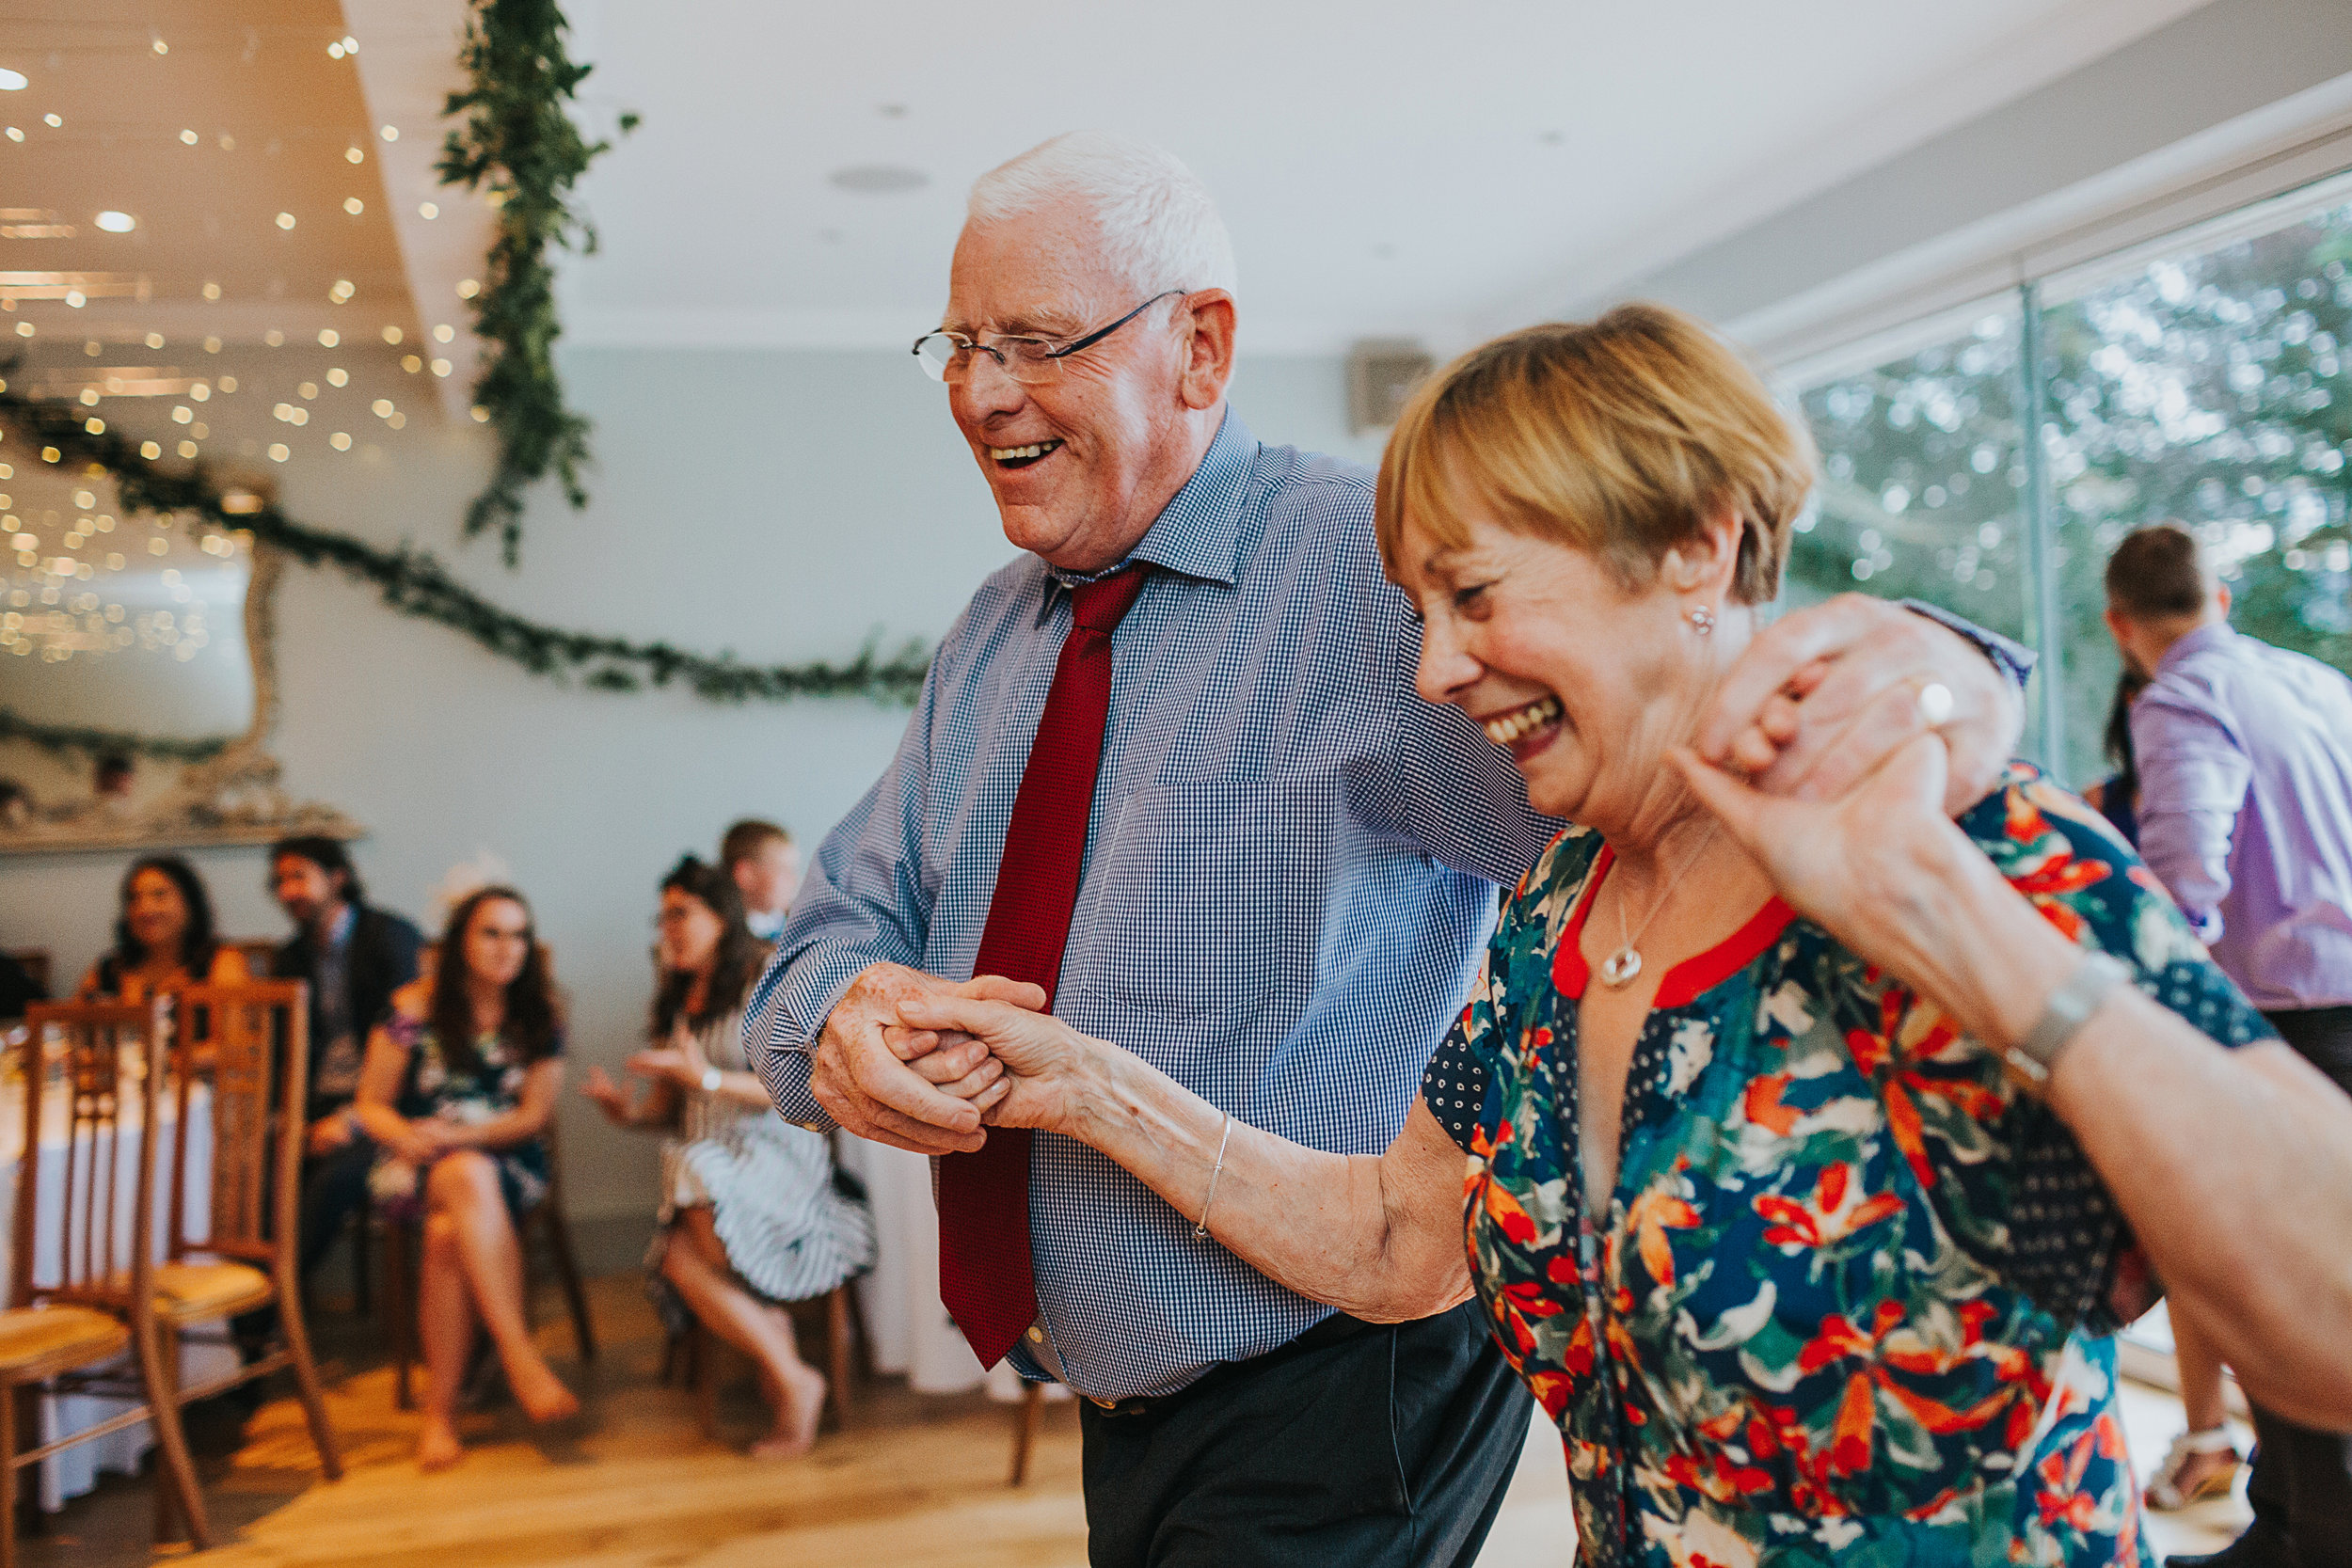 Older couple laughing and dancing together.